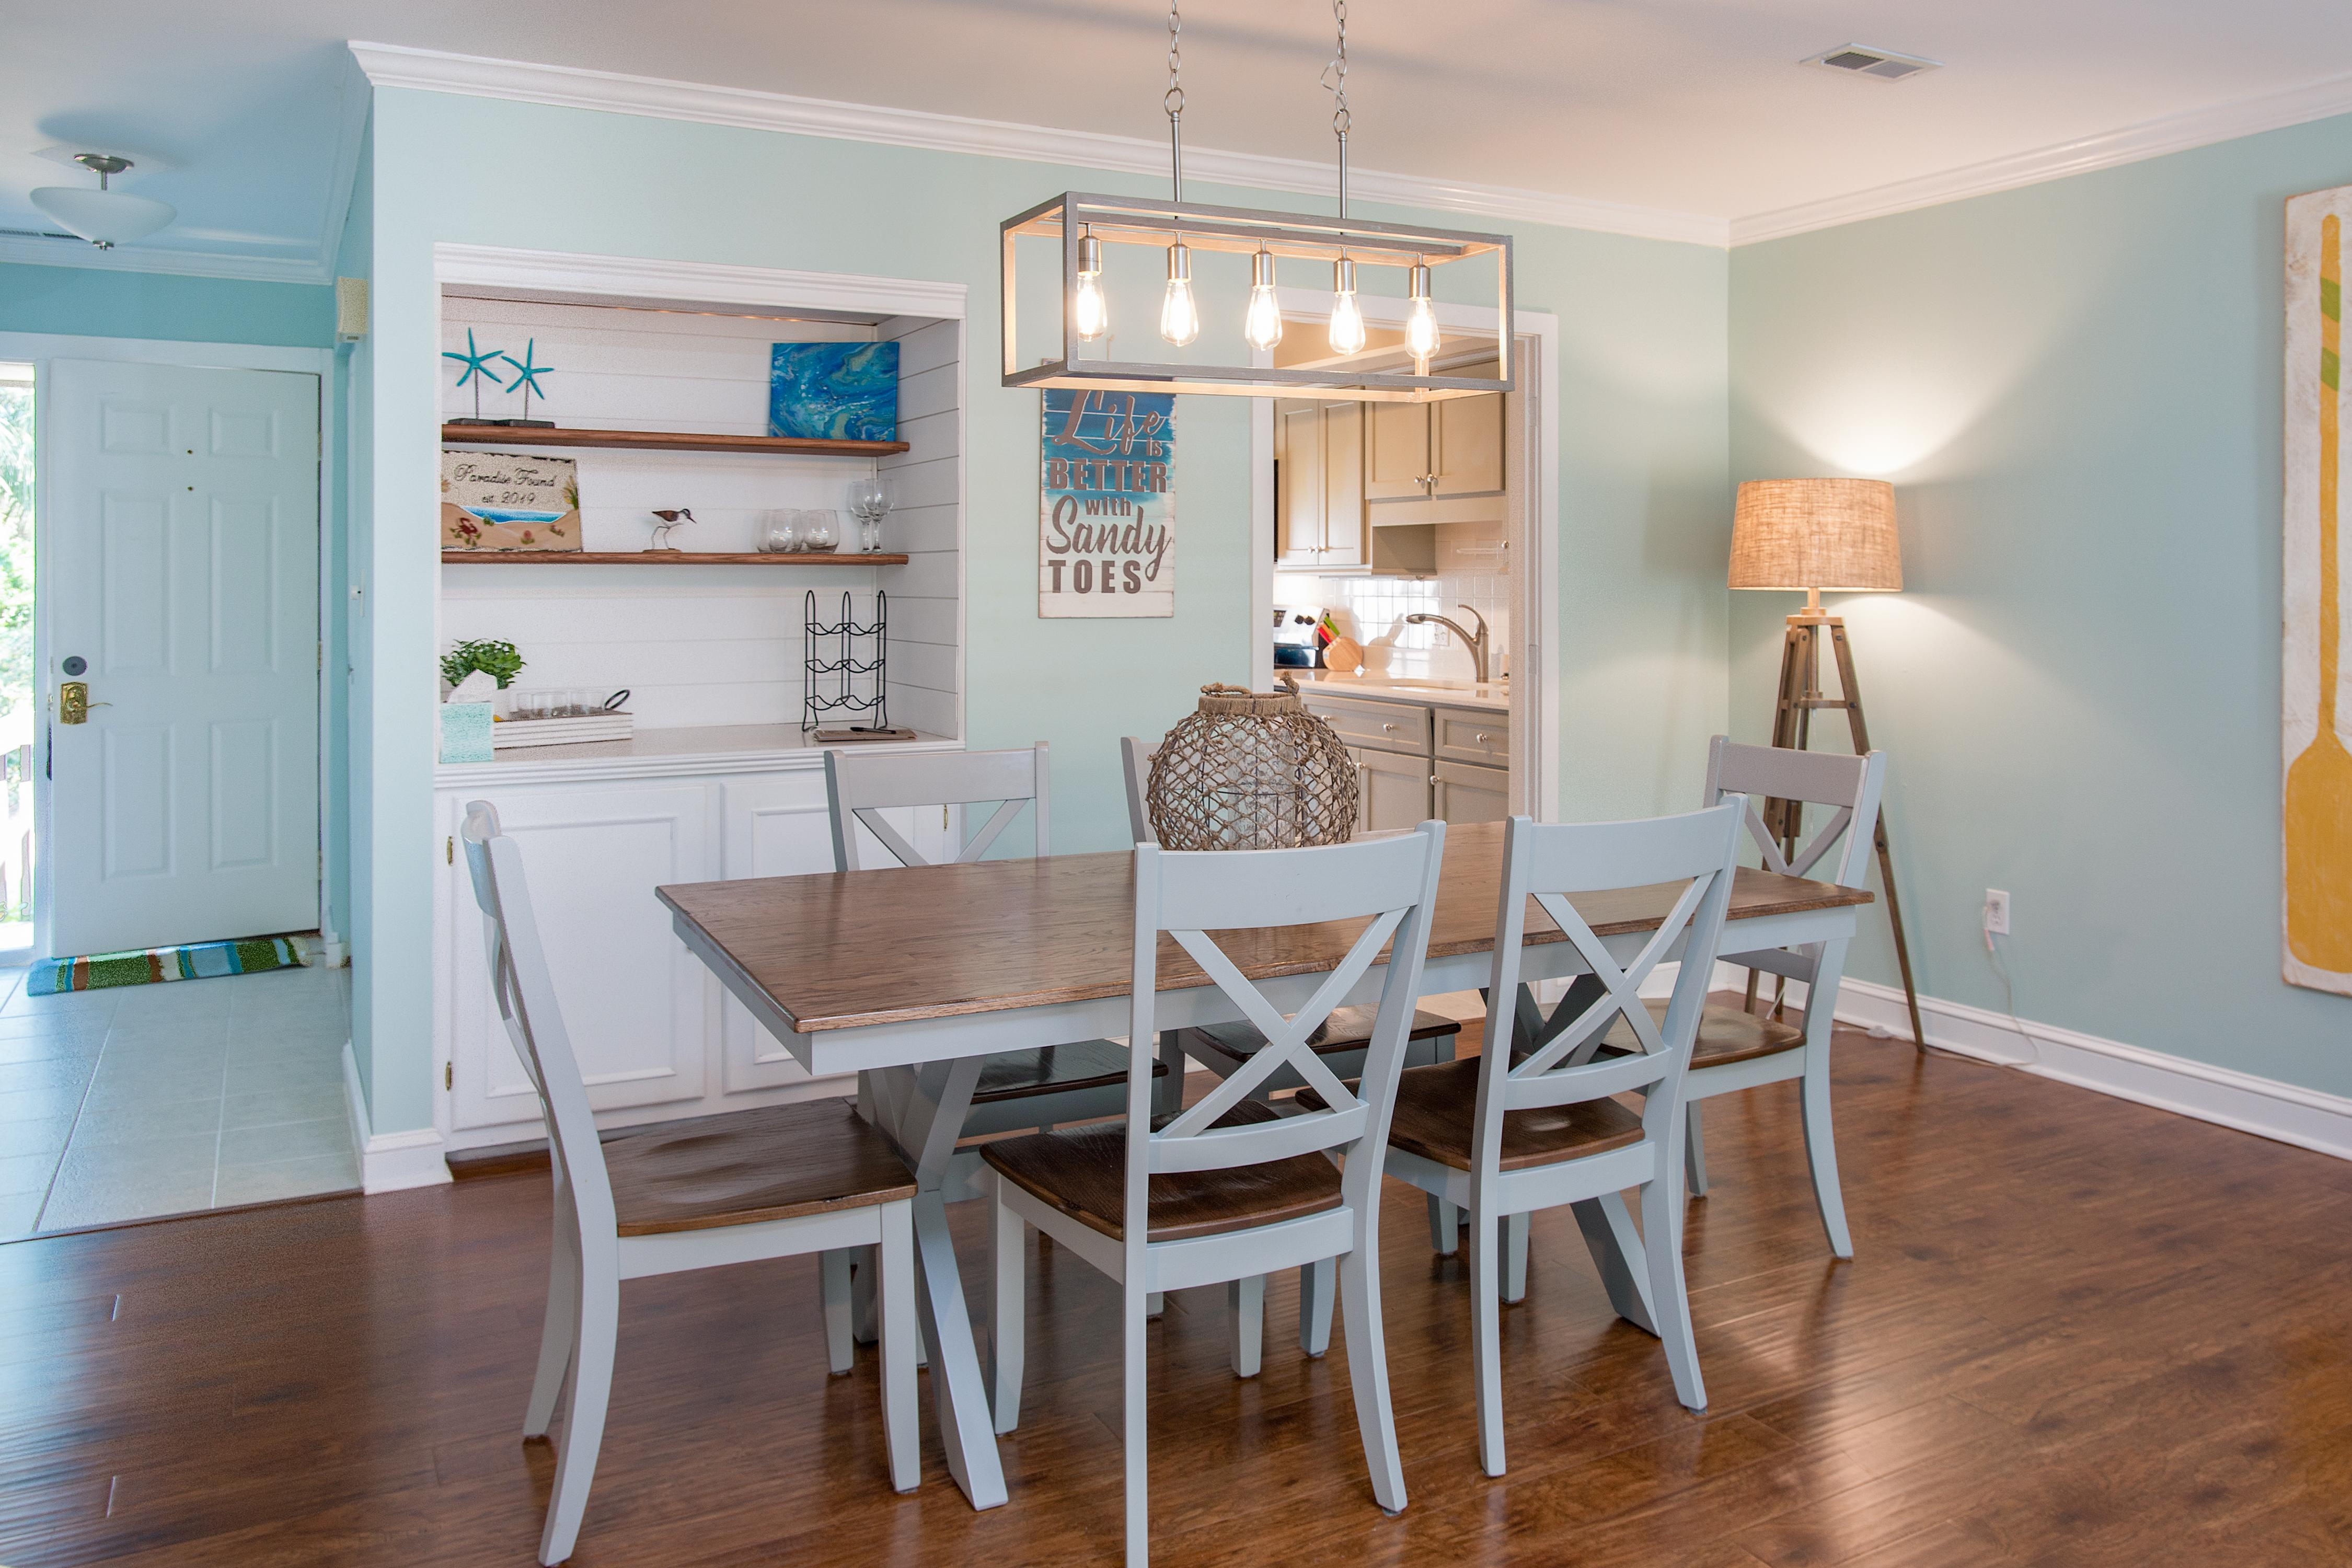 Gather for home-cooked meals at the dining table that seats 6.